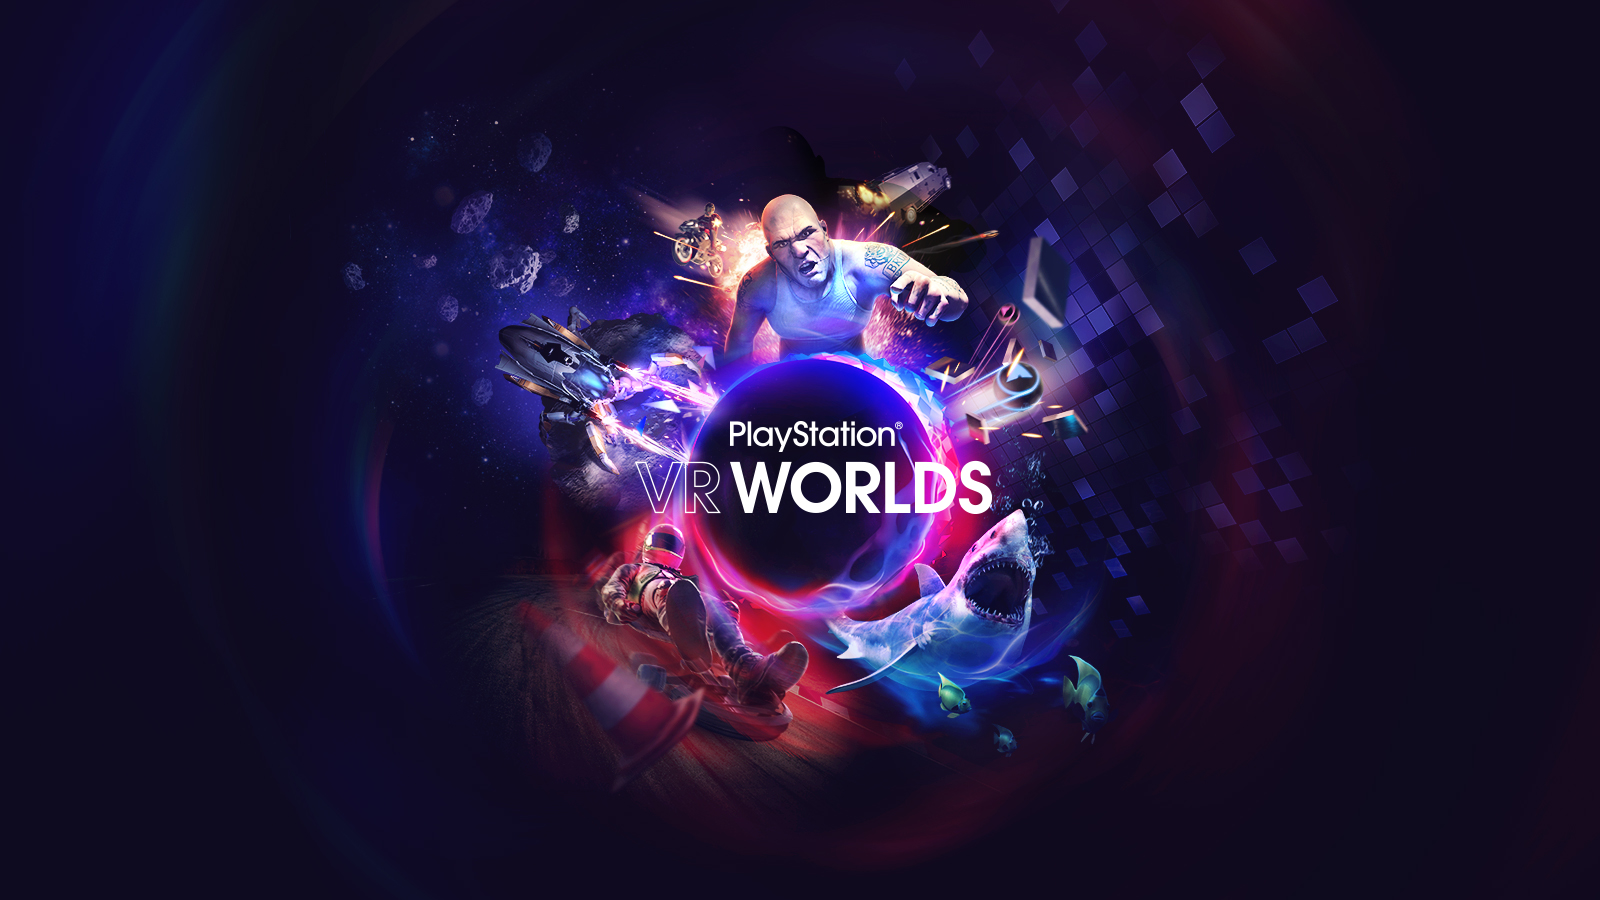 playstation-vr-worlds-listing-thumb-01-ps4-us-14jun16.png